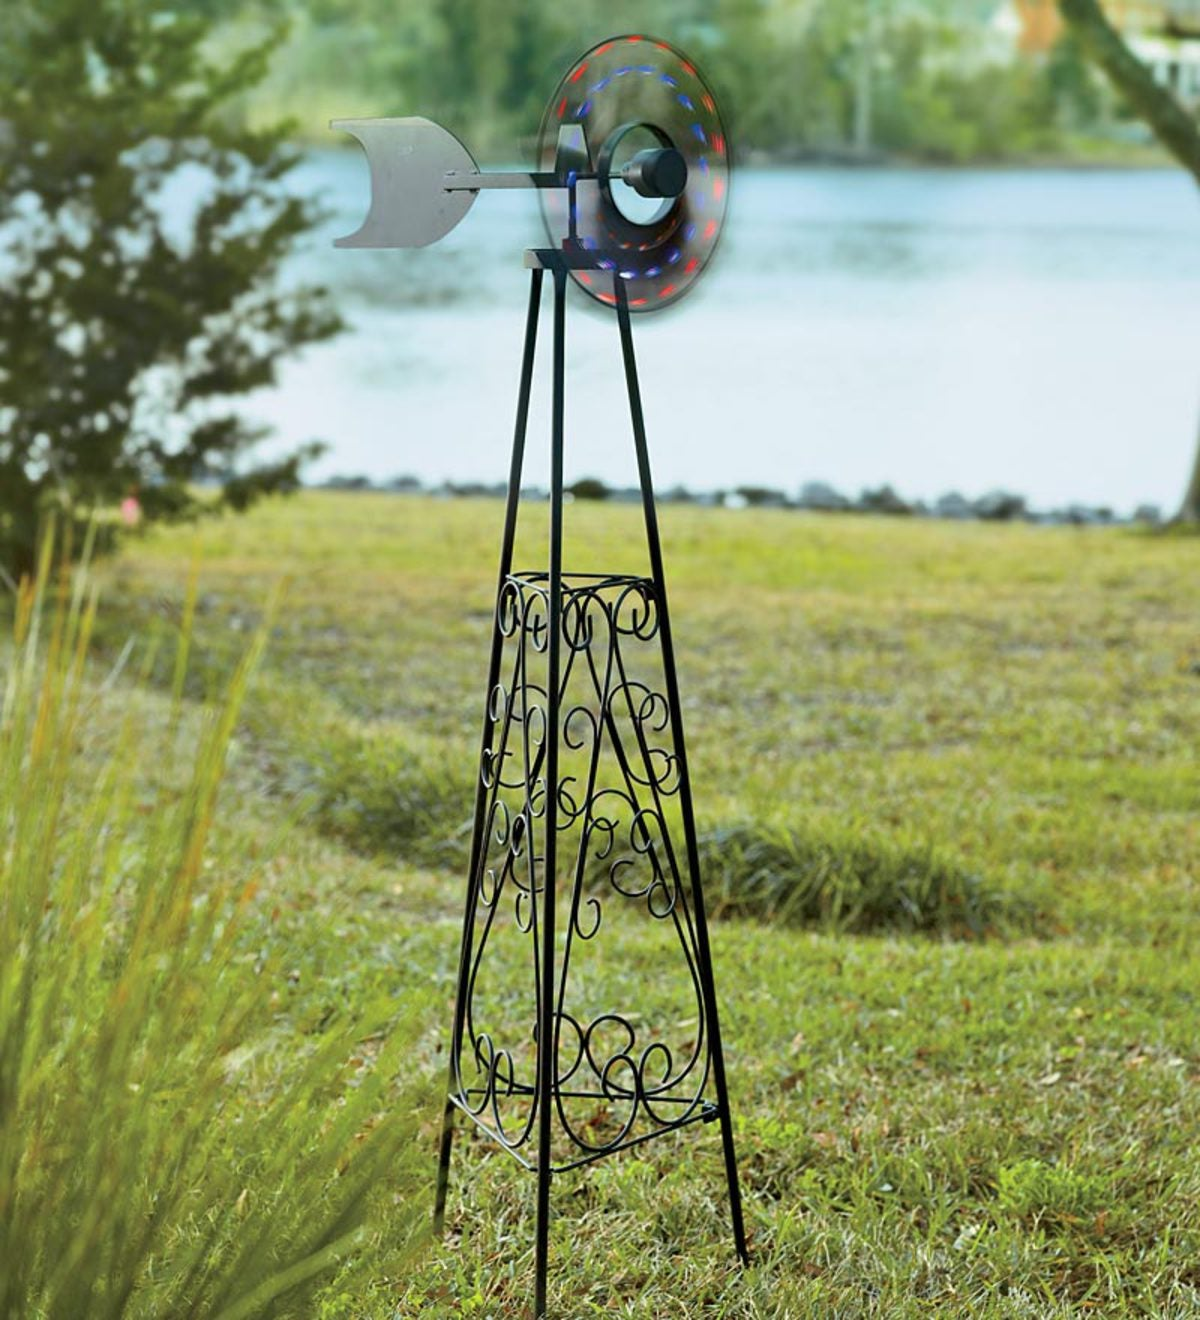 LED Garden Windmill With Decorative Metal Scrollwork Base